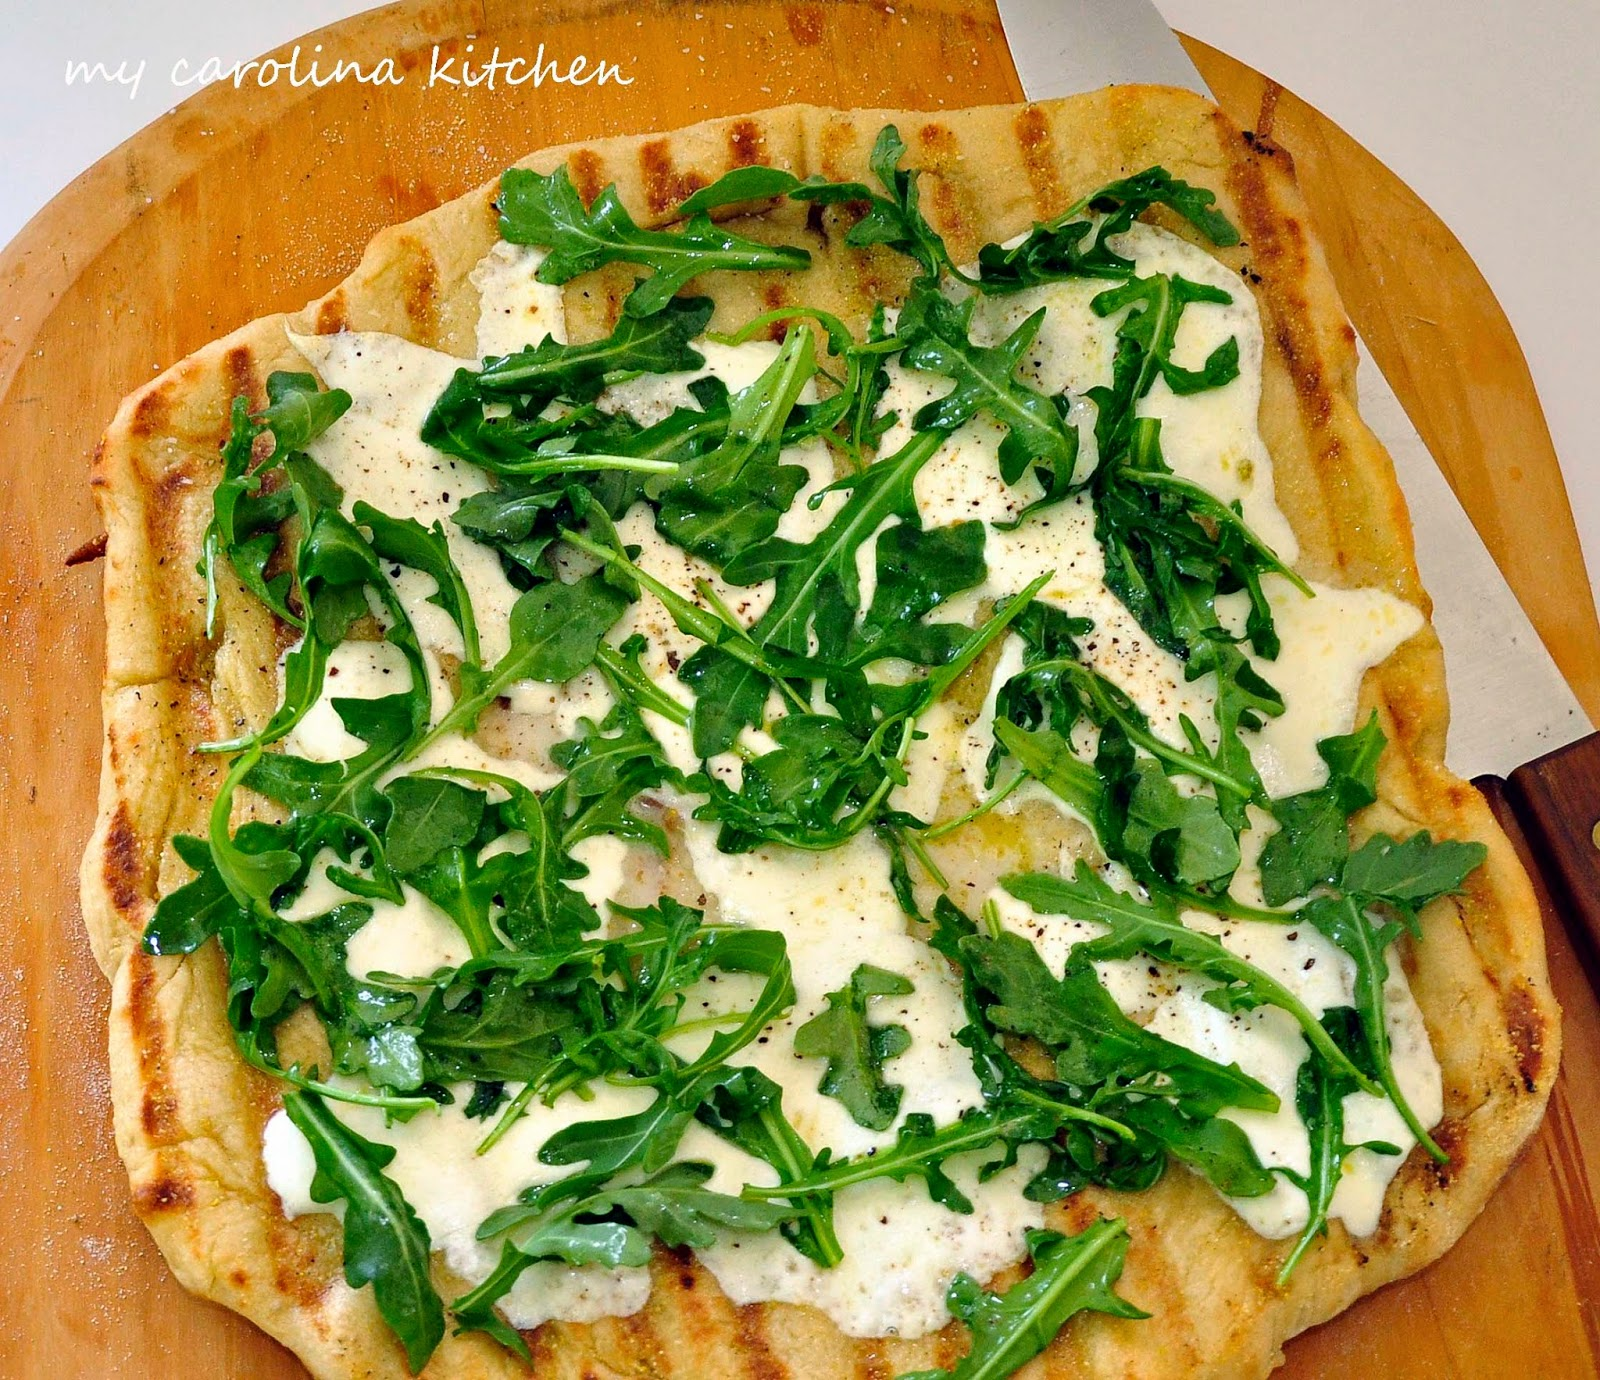 My Carolina Kitchen: Pizza on the Grill